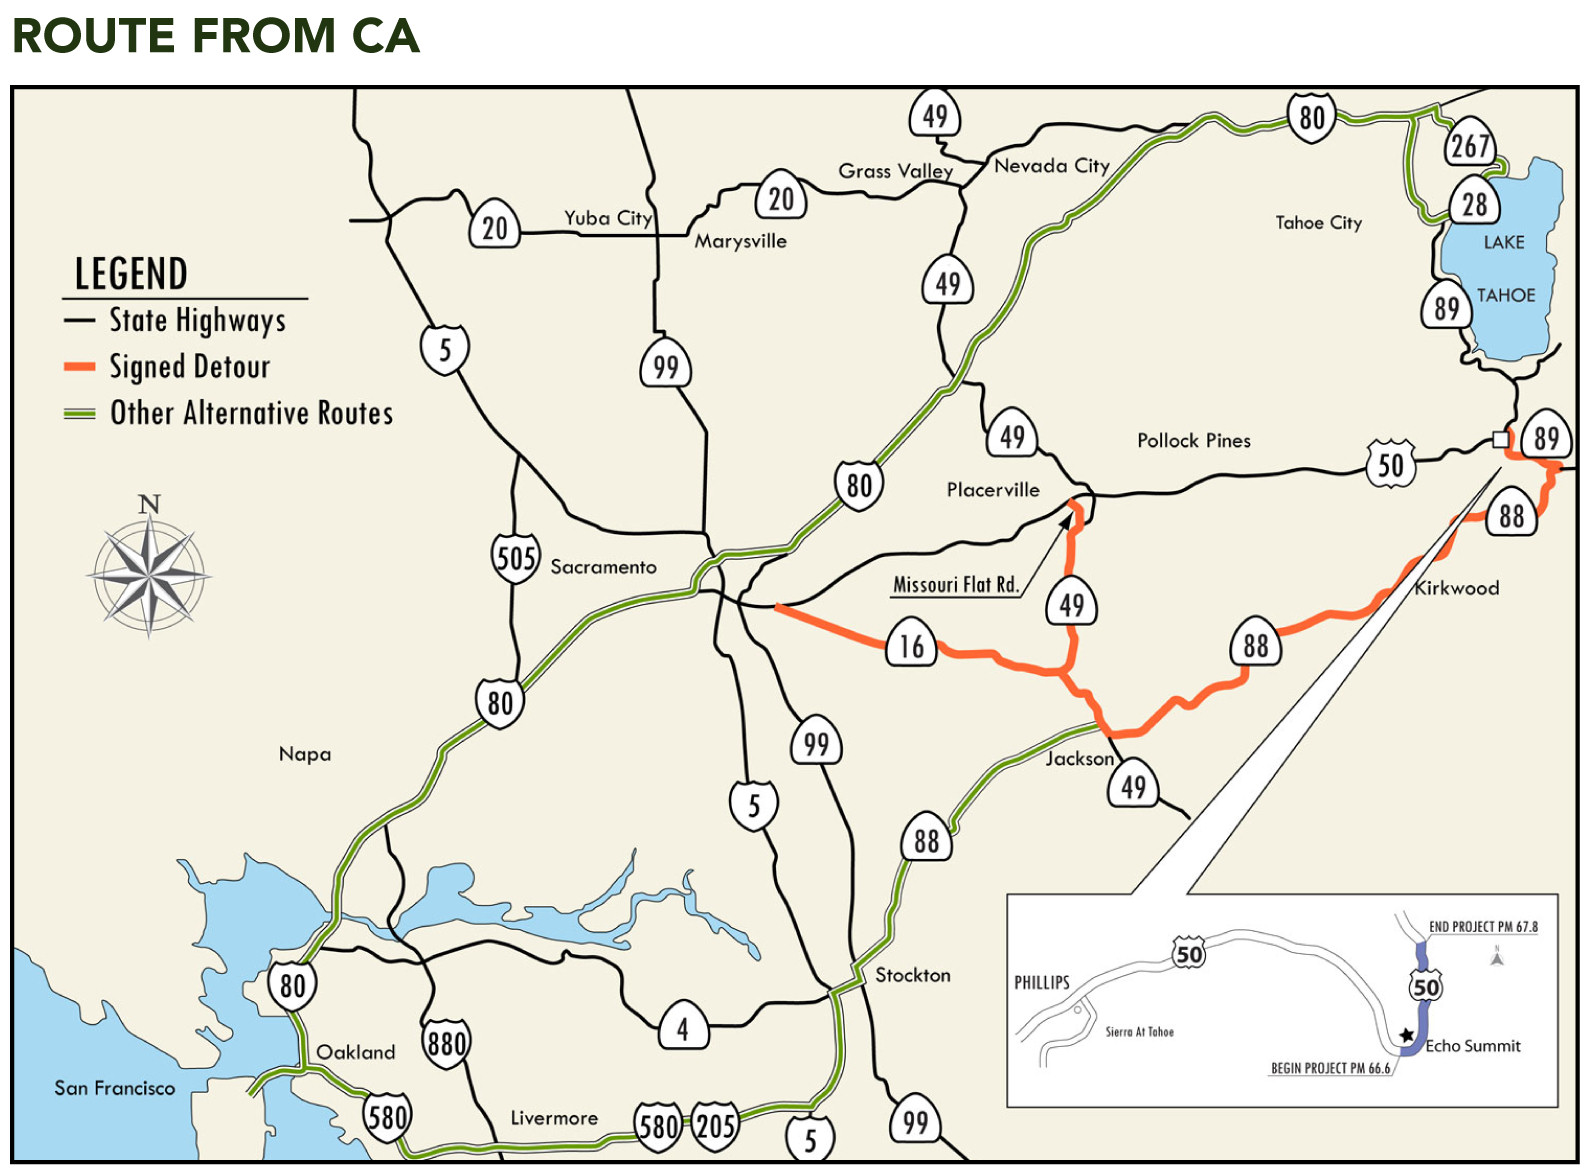 Hwy 50 to Tahoe to be closed for 2 weeks Road Warrior